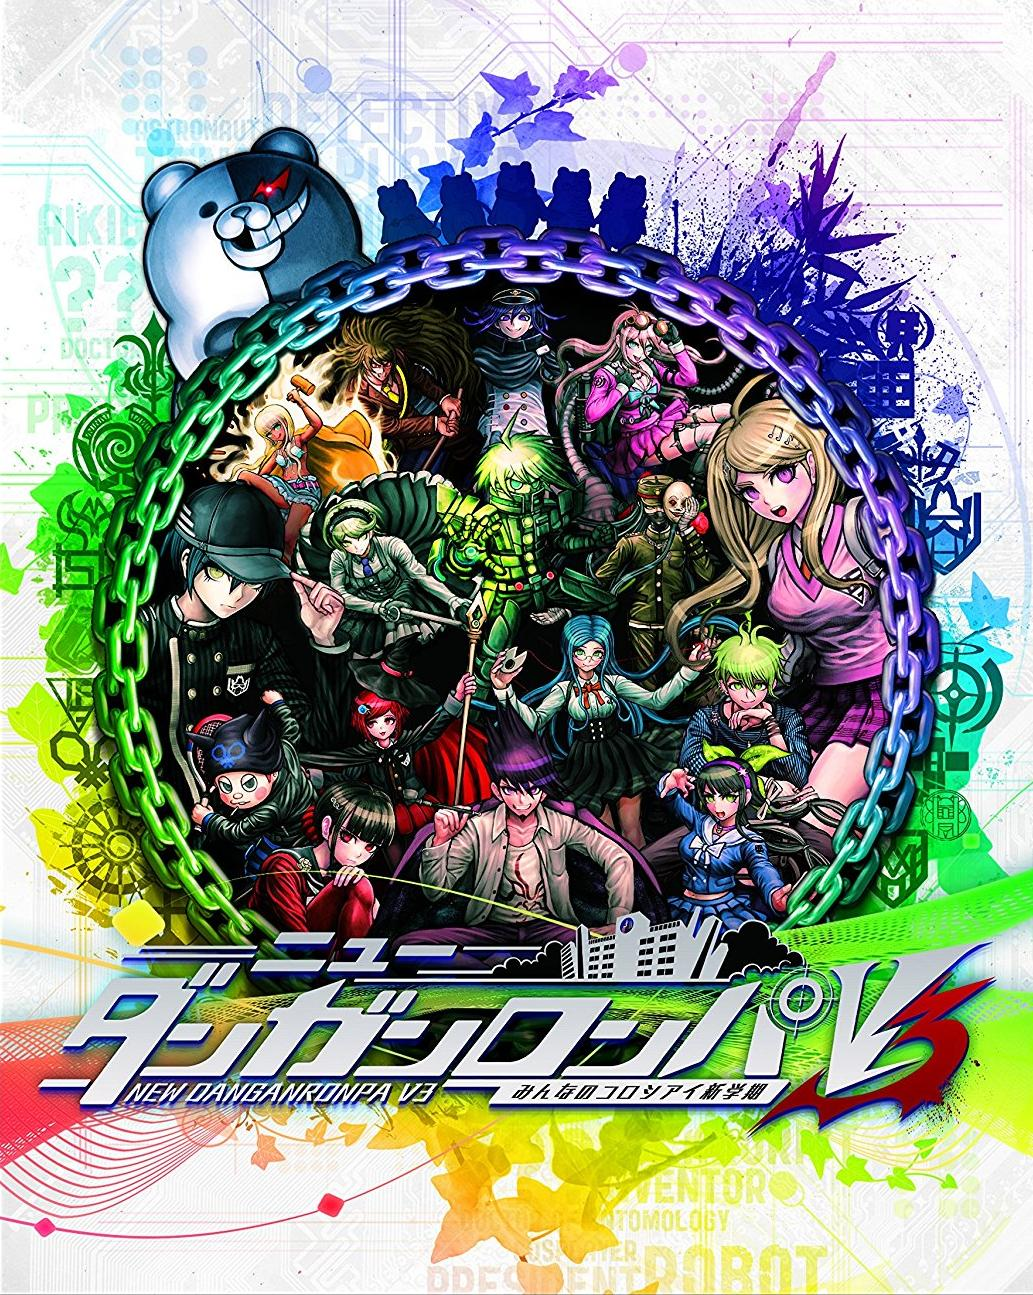 Danganronpa V3 Killing Harmony Video Game 2017 Imdb He feels others shouldn't get close to him, because along with being a murderer he is on a death row and thus. danganronpa v3 killing harmony video